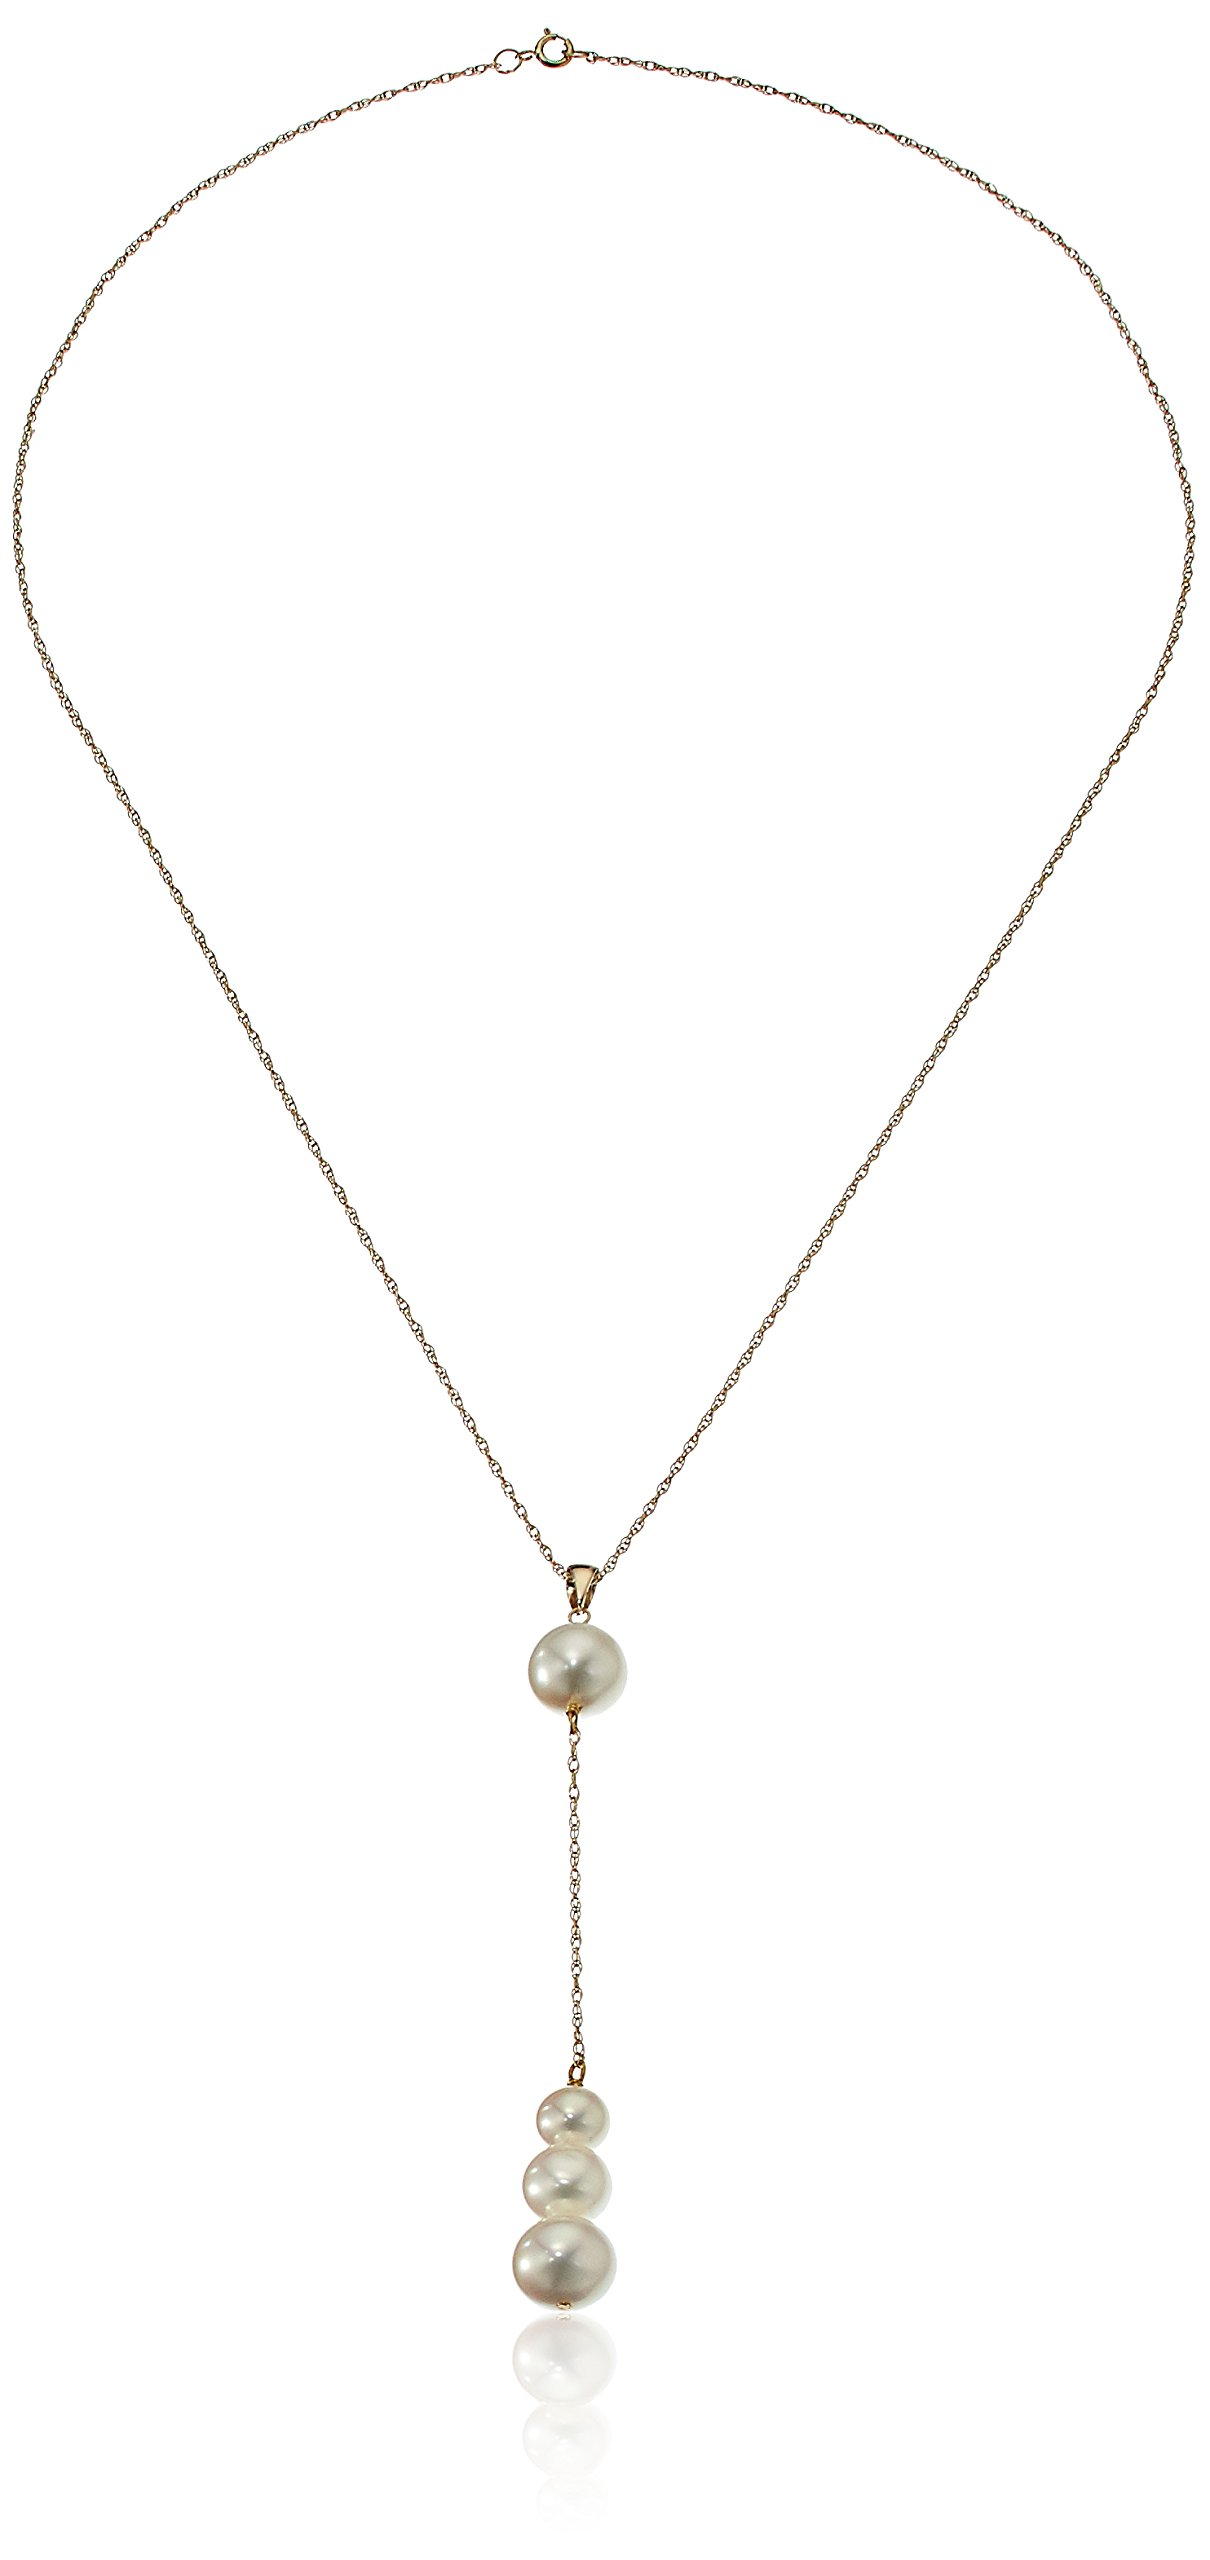 14k Yellow Gold Chain with Graduated 6-9mm White Freshwater Cultured Pearl Y-Shaped Necklace, 18''